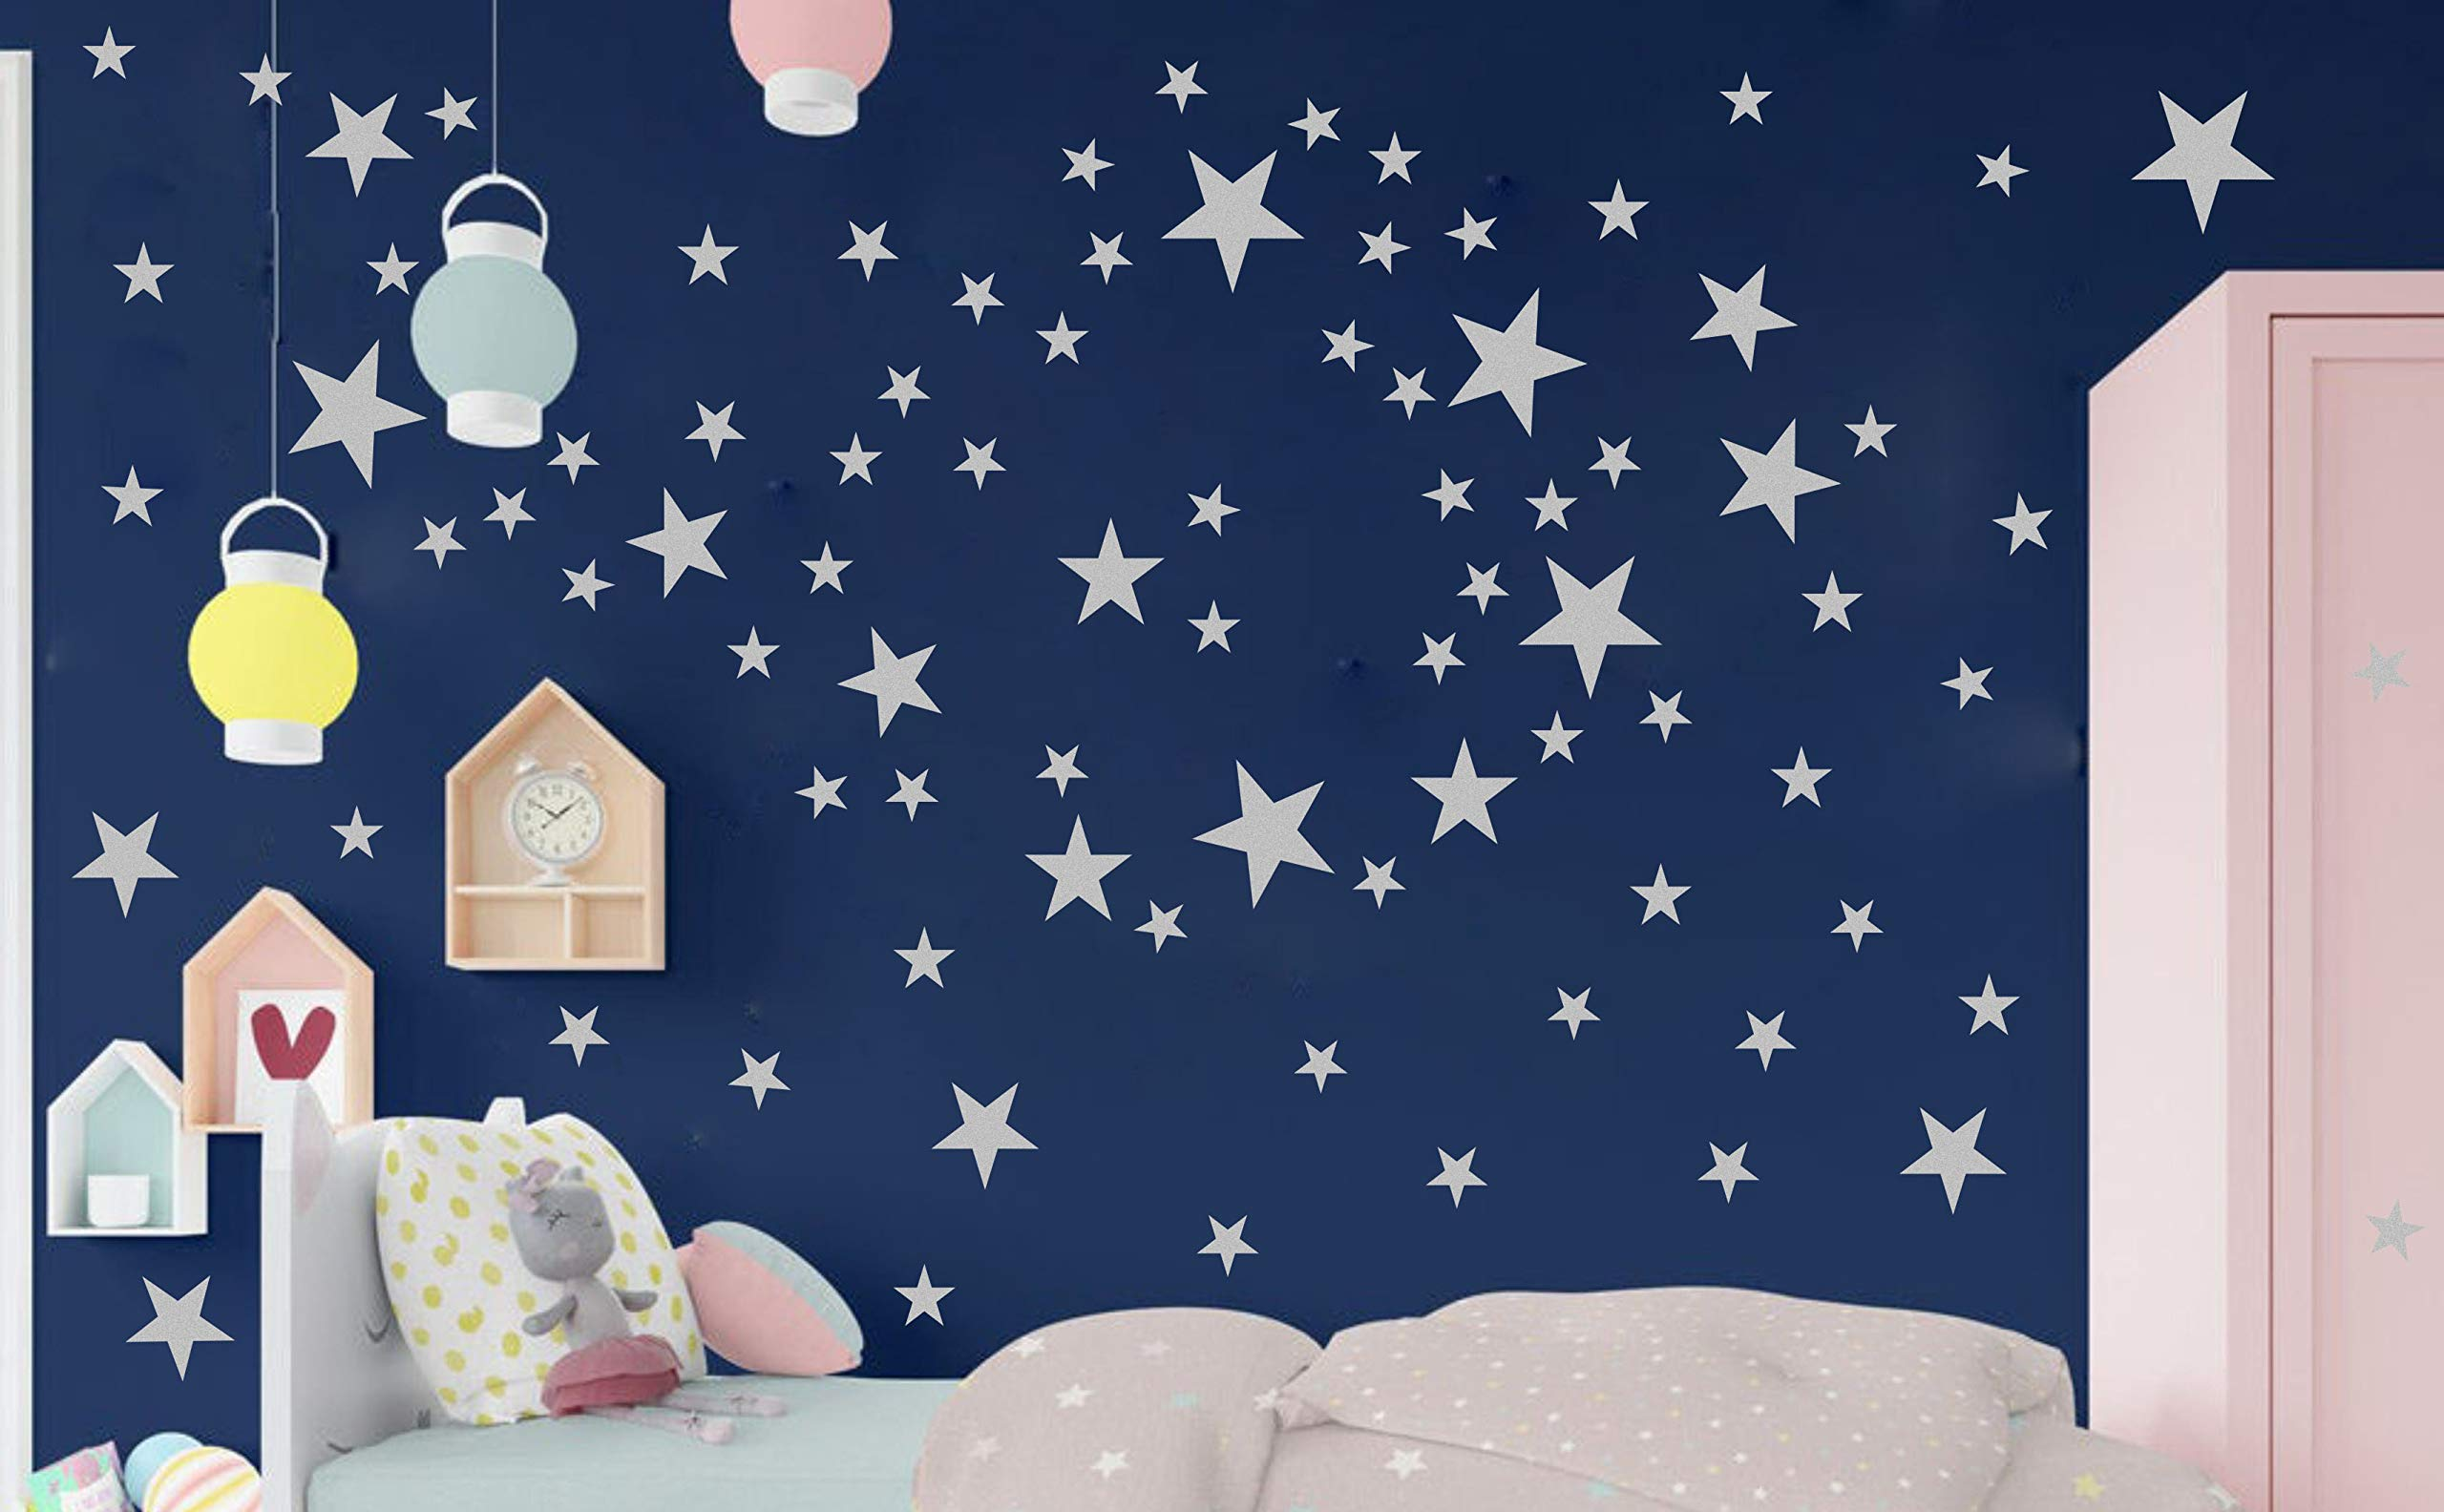 Nursery Decor Easy to Apply PREMYO Set of 25 Cloud Wall Stickers Kids Decals for Bedrooms Girls Boys Pastel Blue